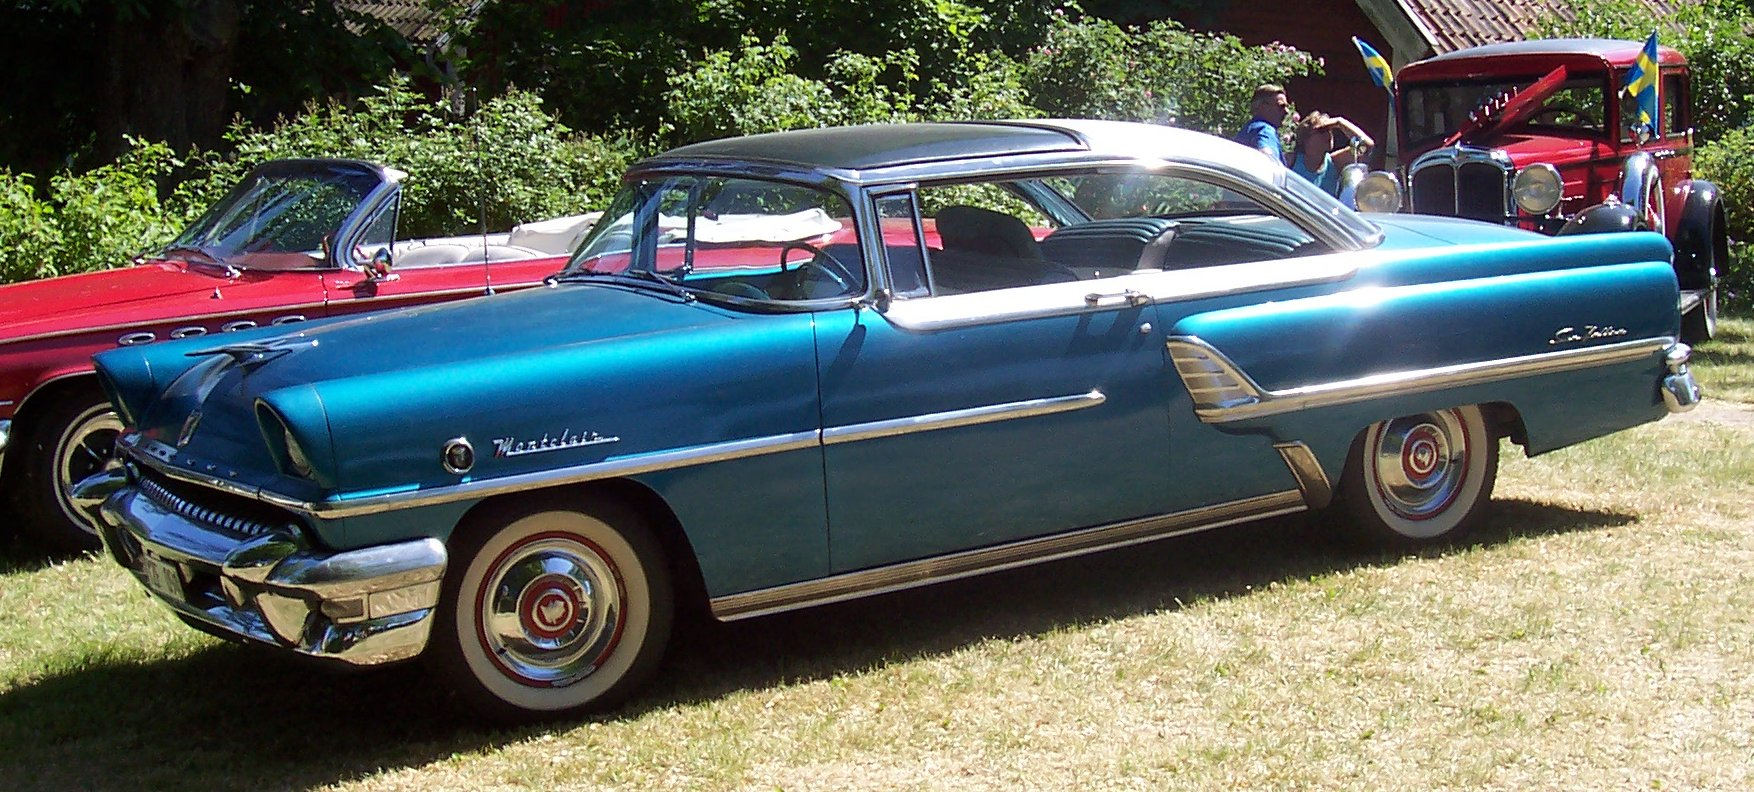 File:1955 Mercury Montclair Sun Valley.jpg